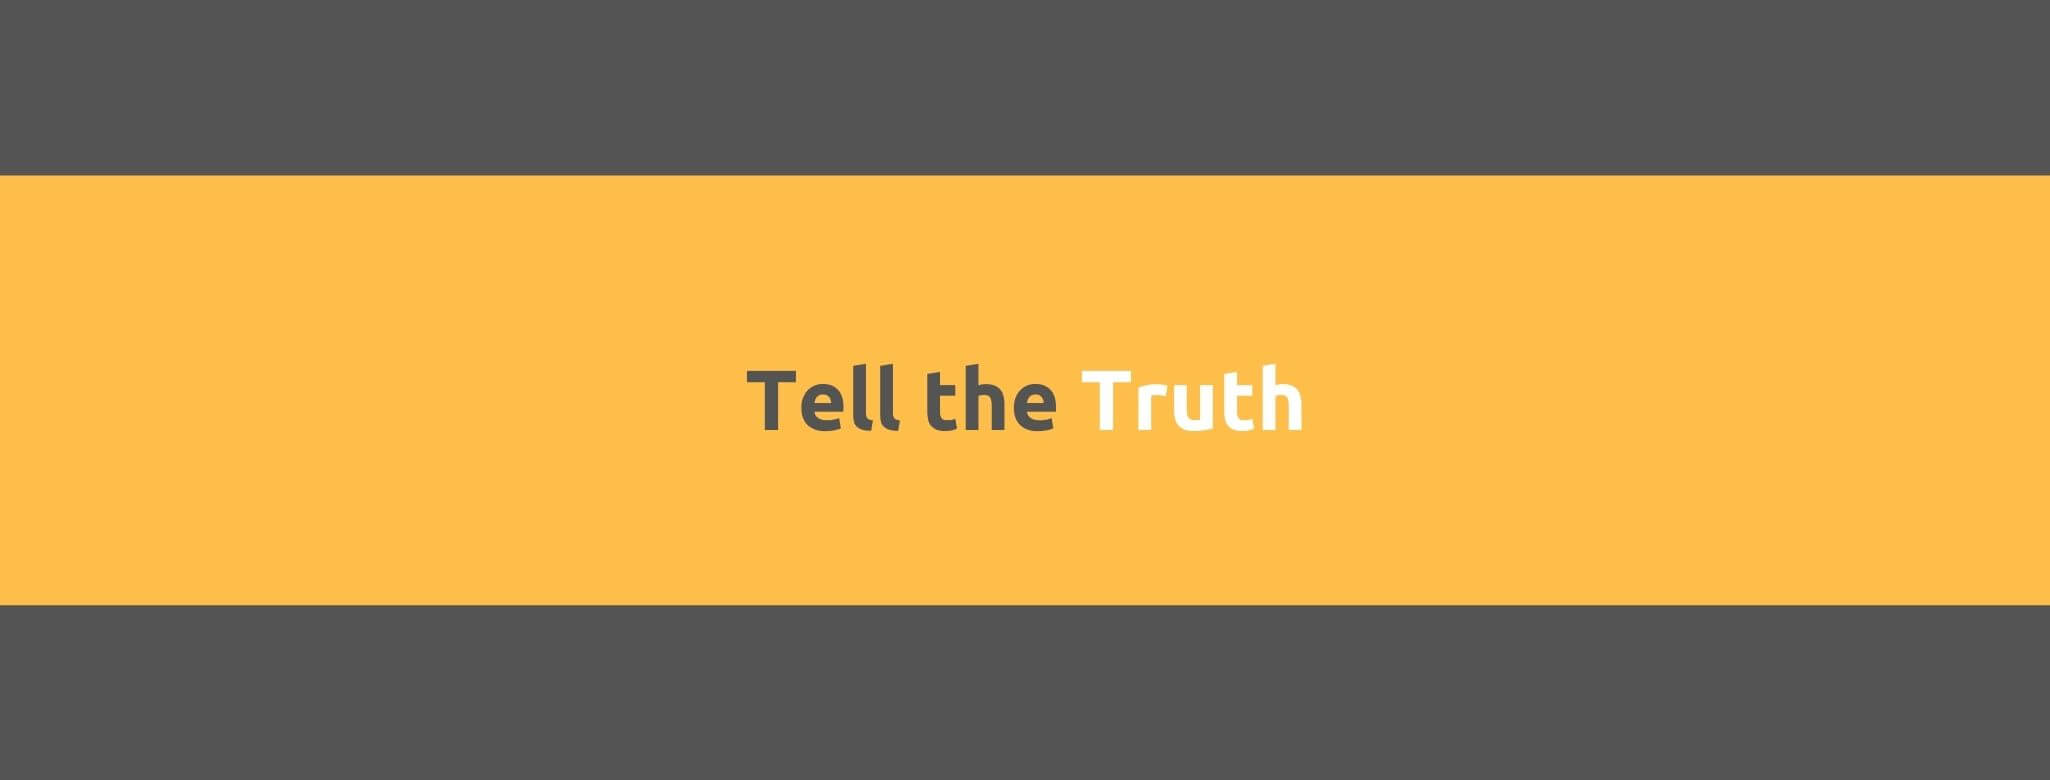 Tell the Truth - 25 Rules for Great Customer Service - Replyco Helpdesk Software for eCommerce